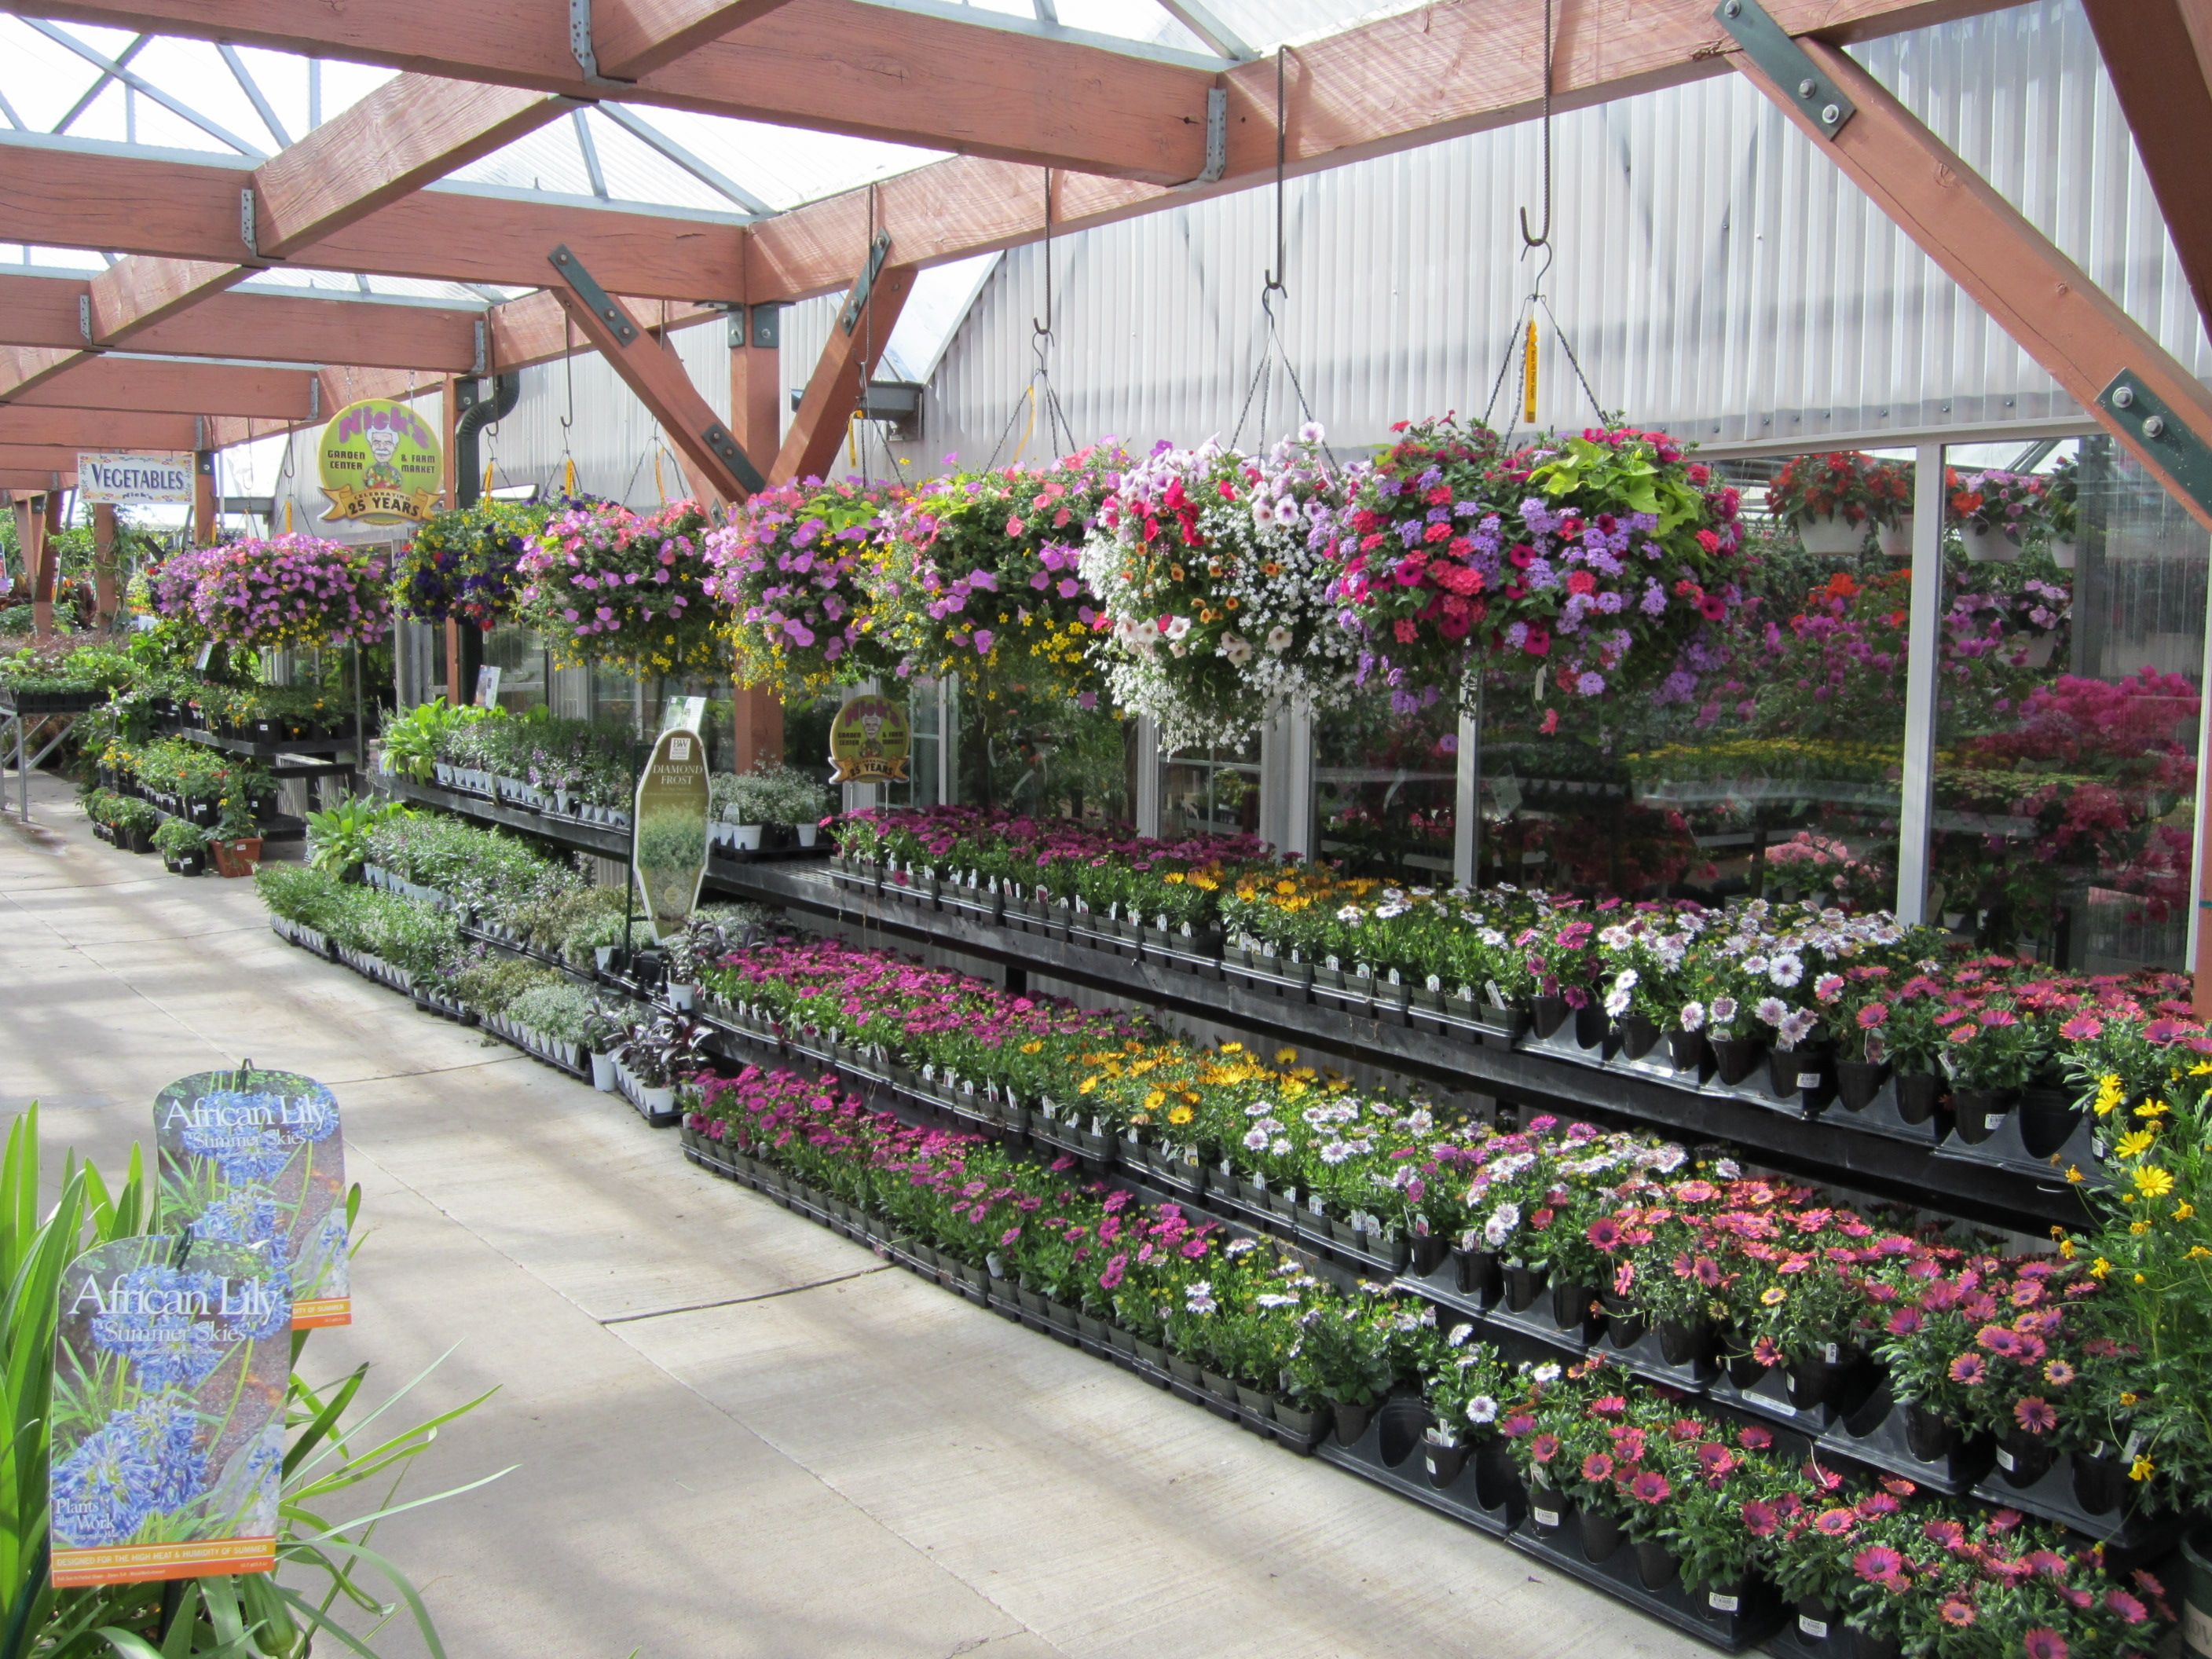 Hanging Baskets Or Annuals For Bedding Plants We Have The Flowers